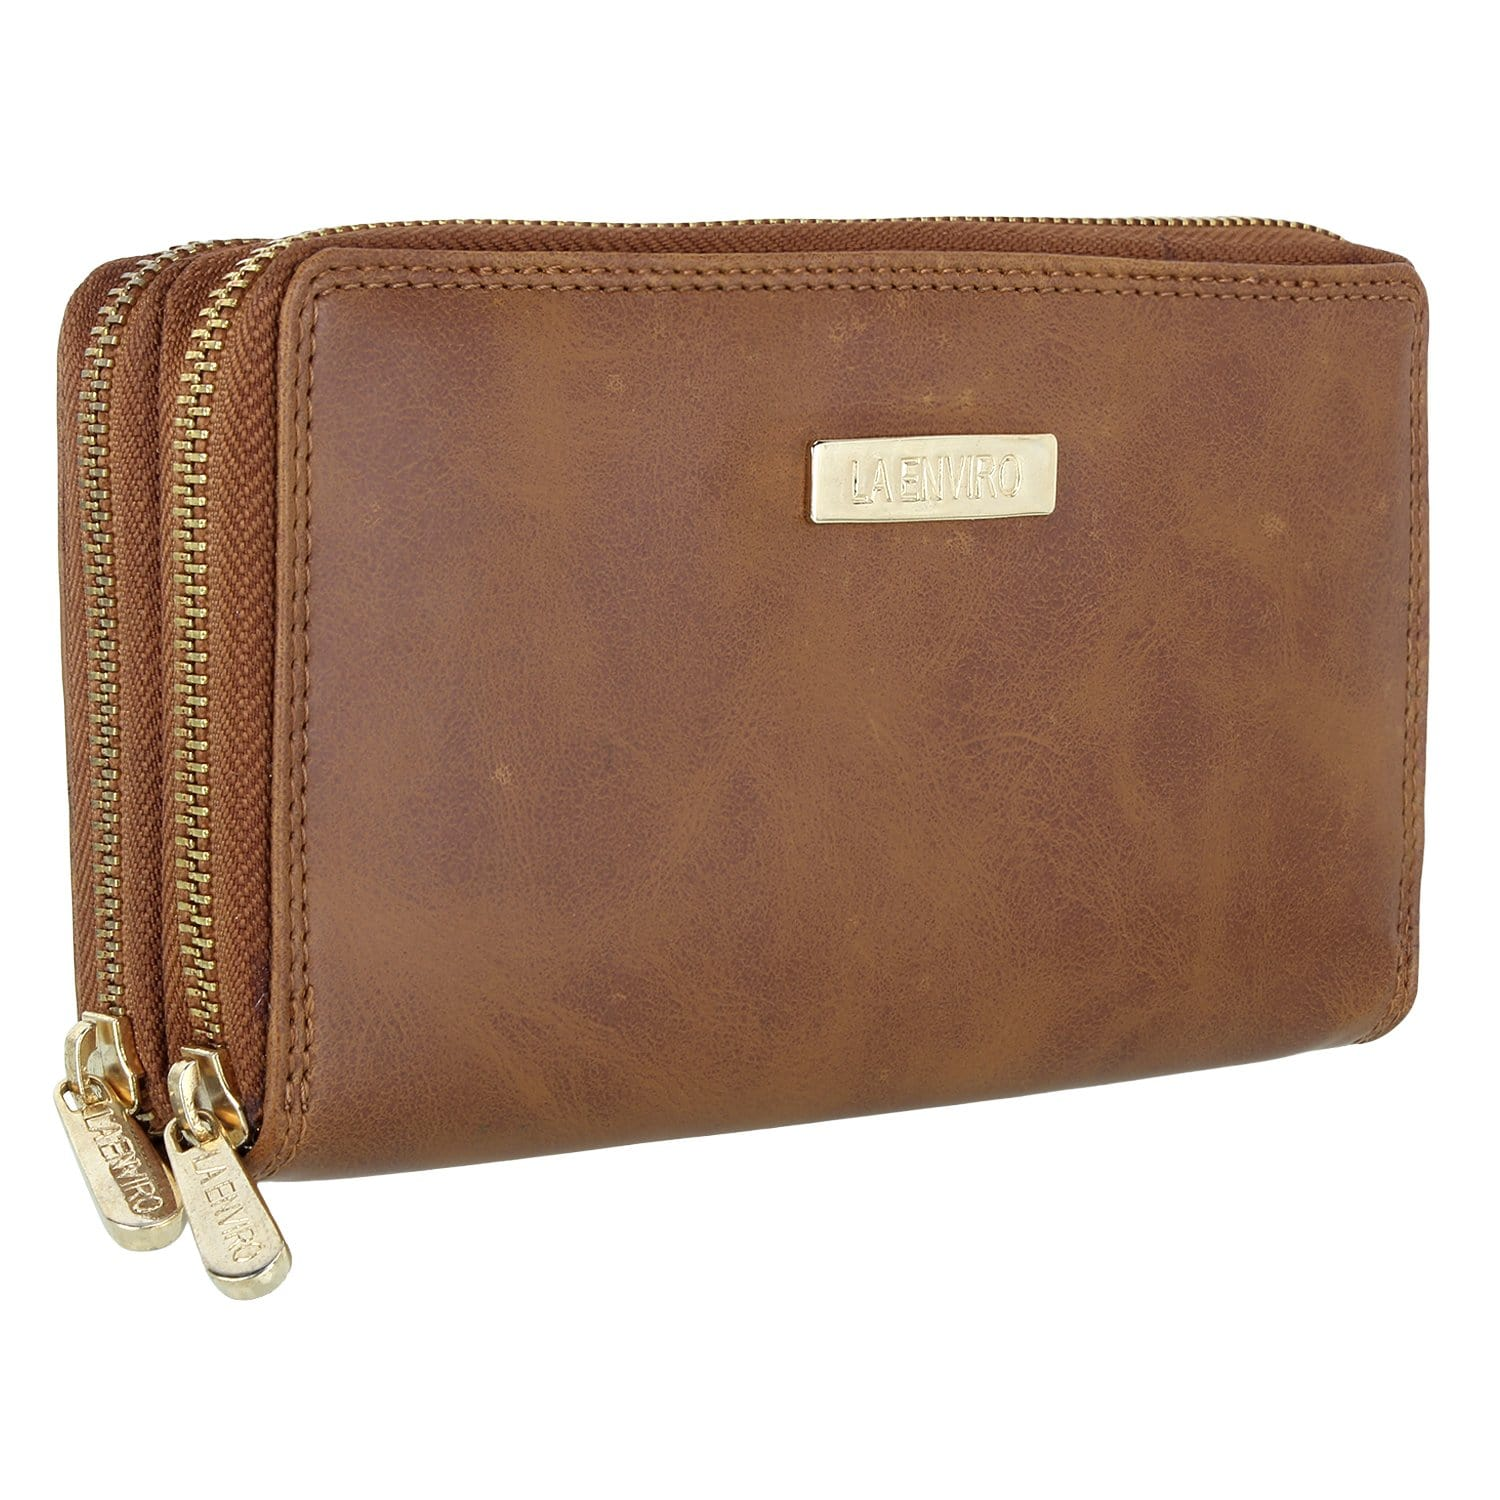 Image of La Enviro Double Zipper Purse